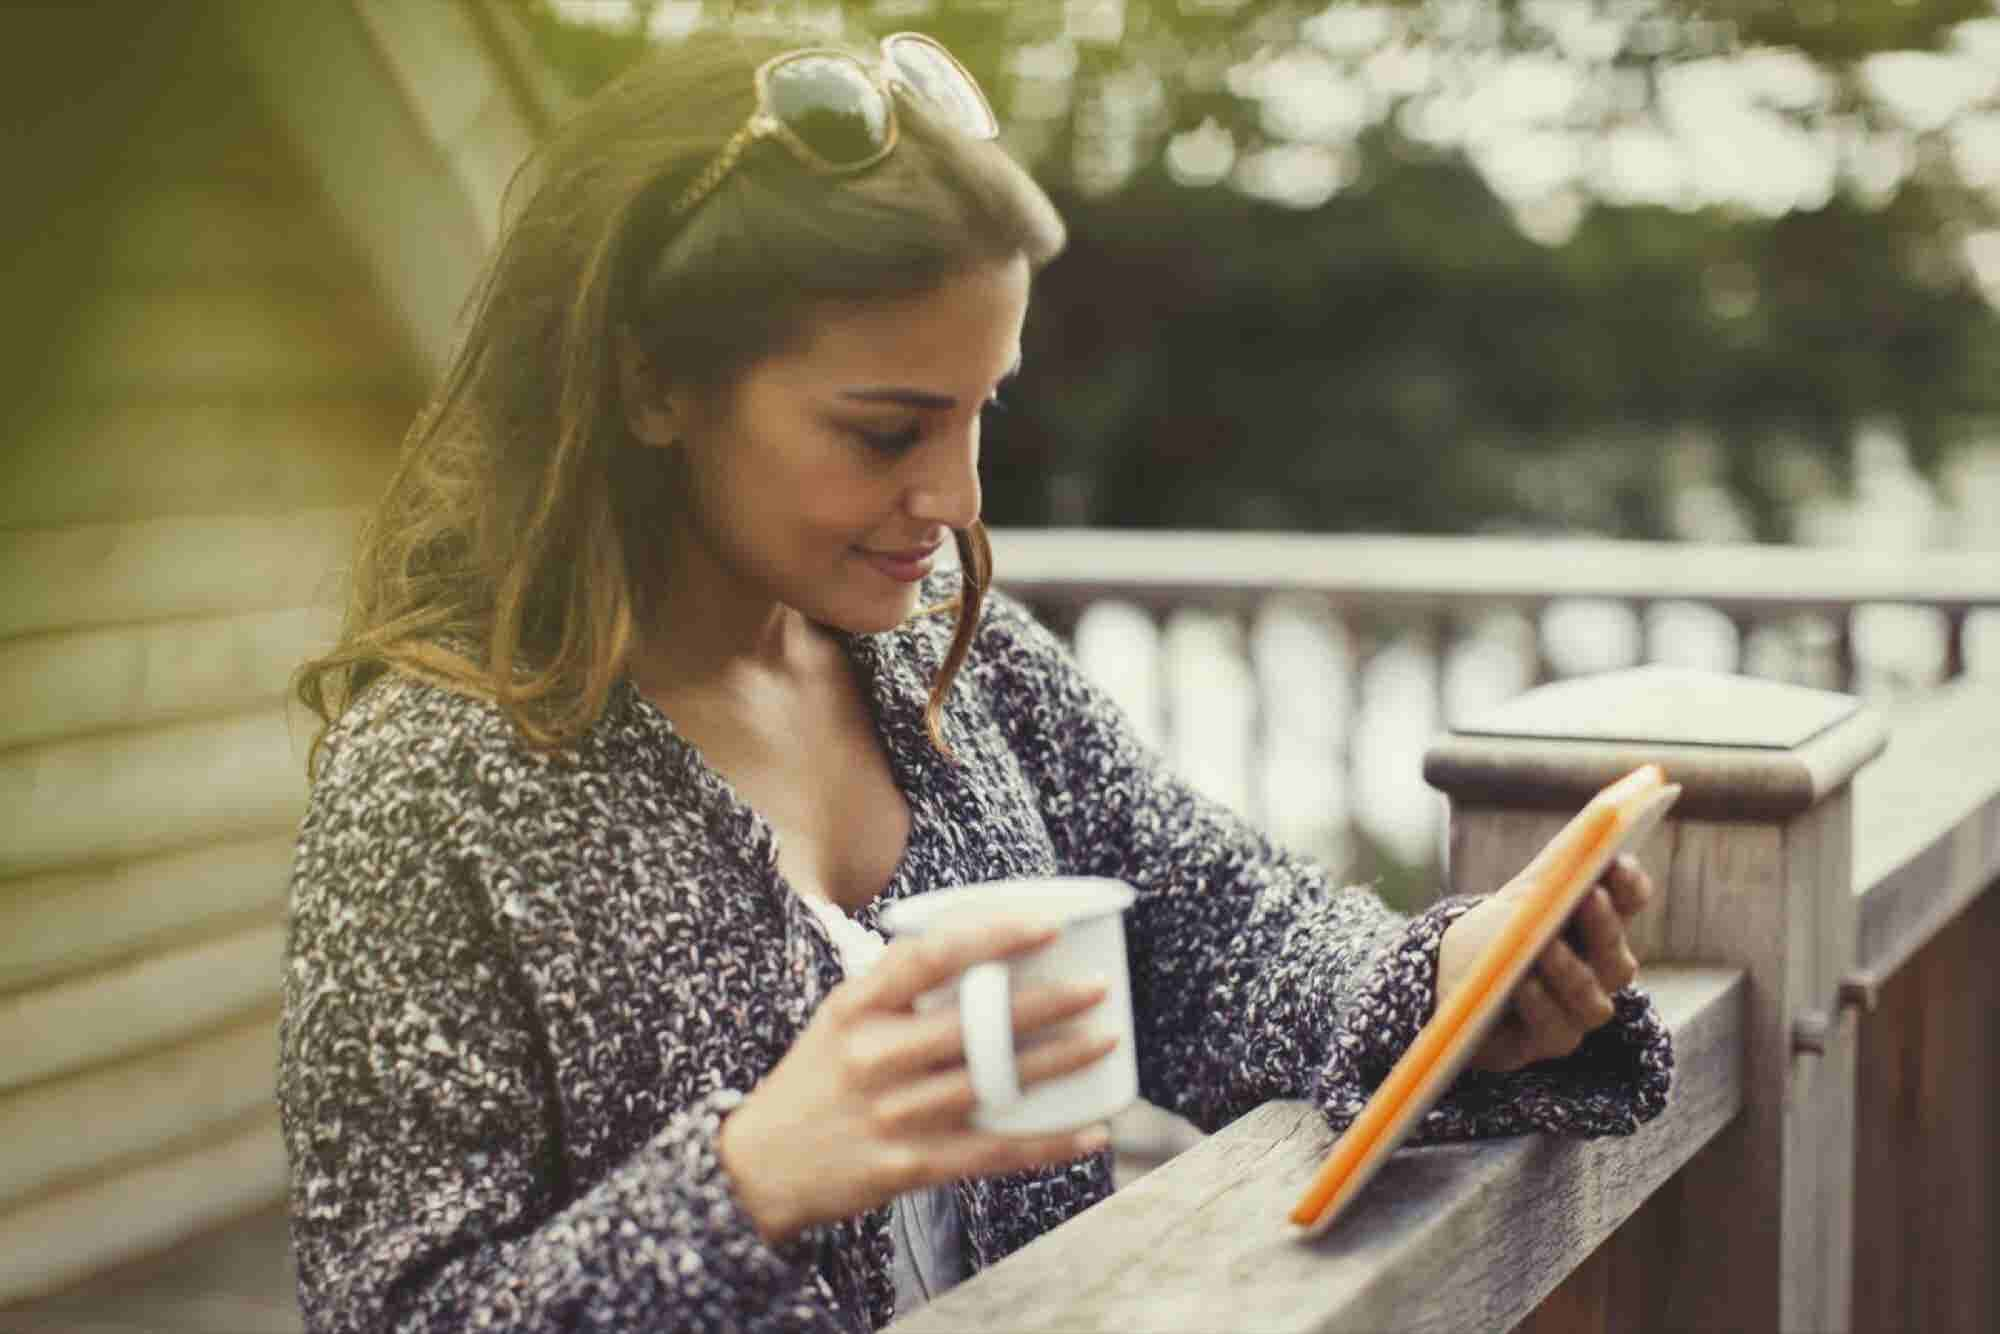 8 Ways Very Busy People Find the Time to Be Very Well Read People